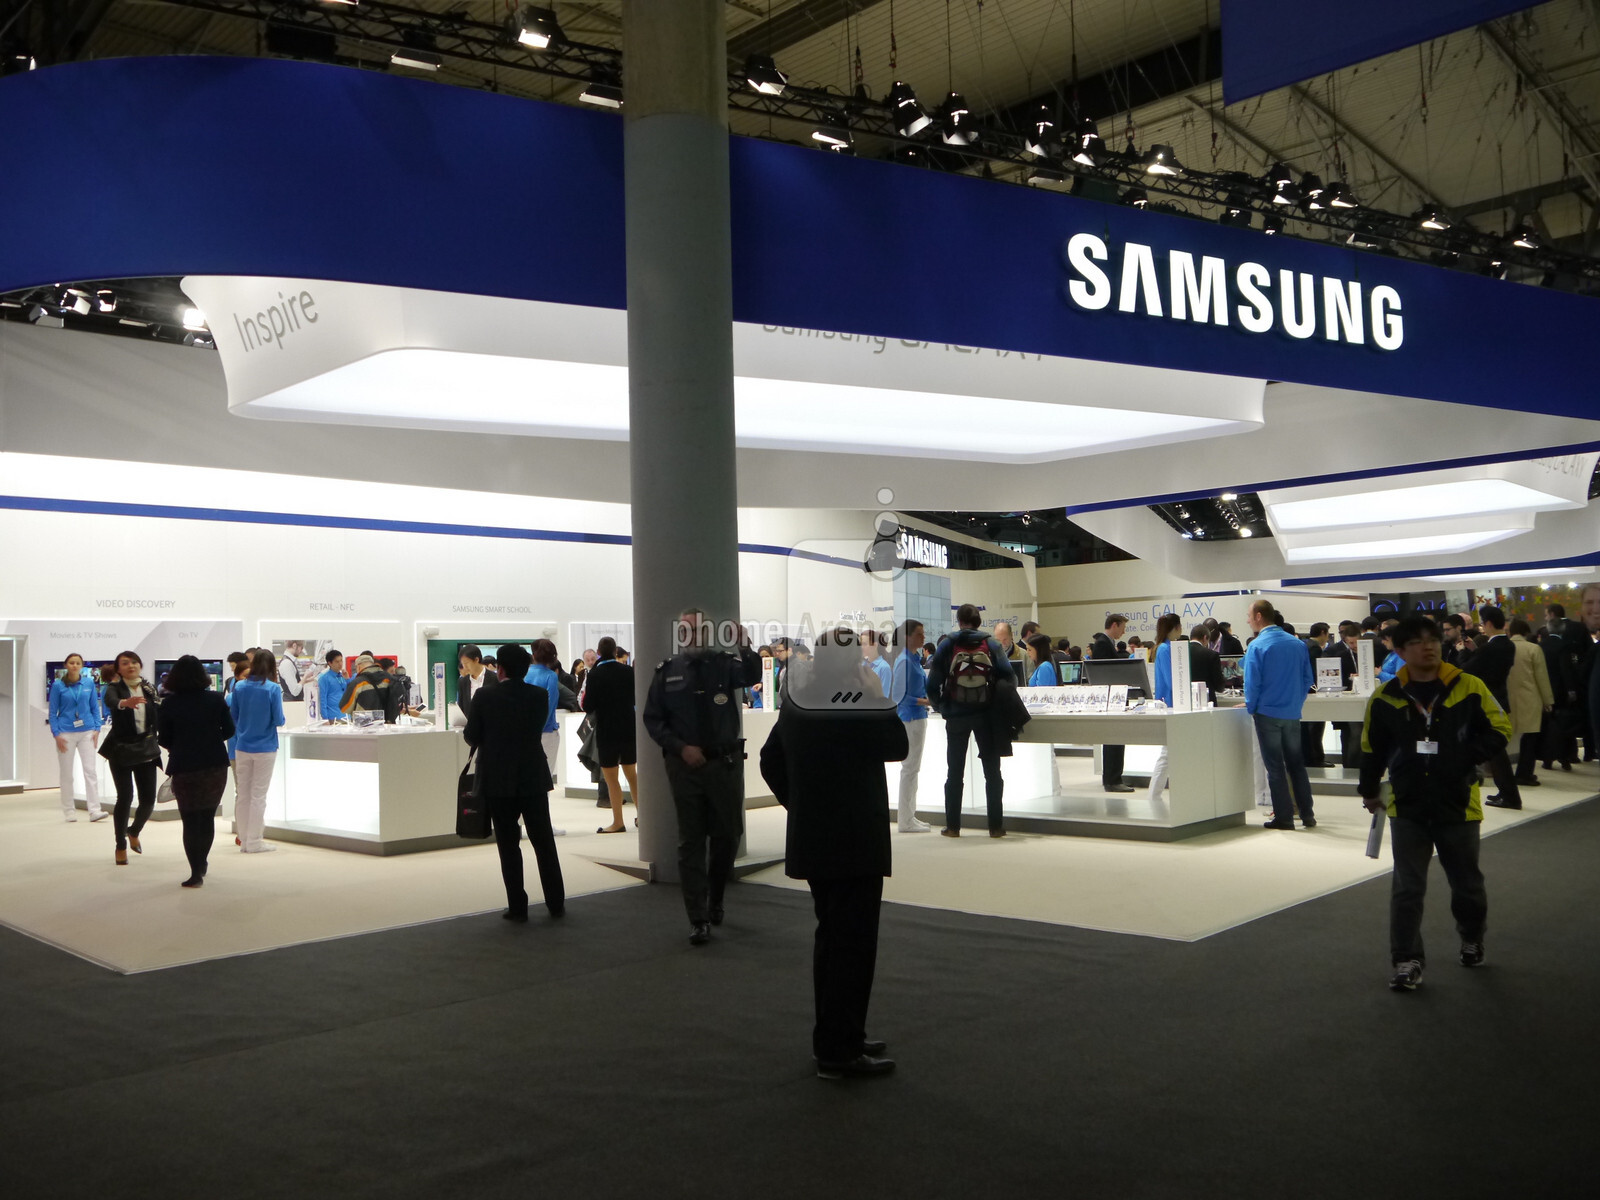 The Samsung booth - simply huge, despite the dearth of announcements